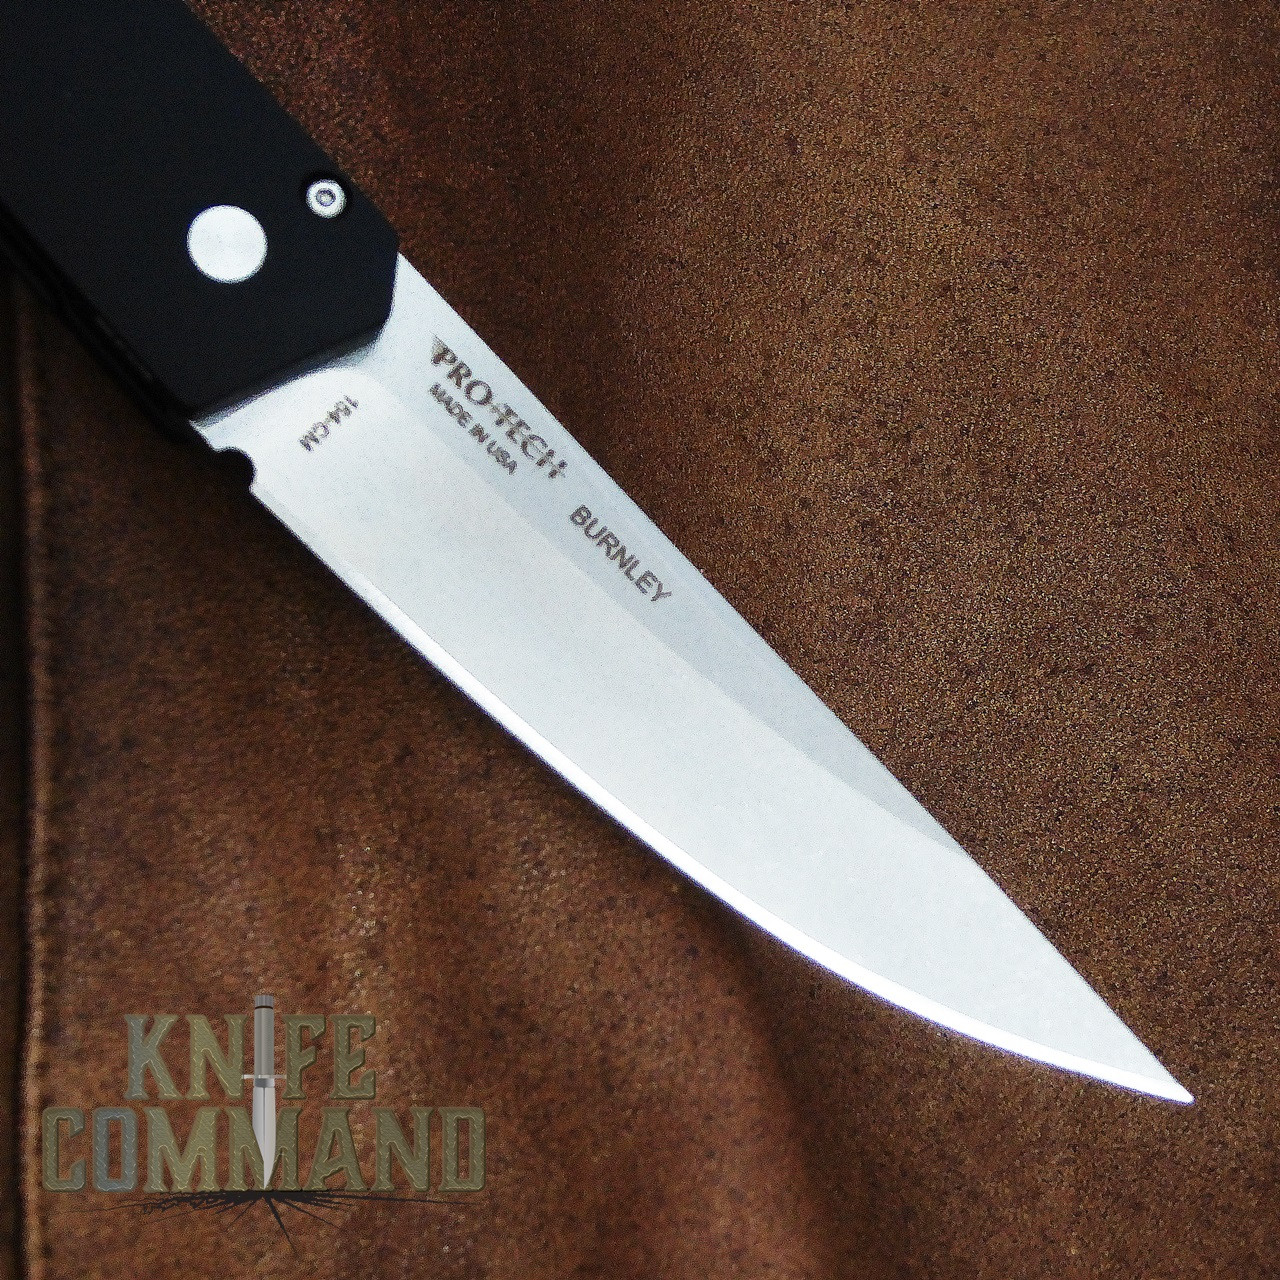 Boker Pro-Tech Burnley Kwaiken Automatic Knife Stonewash 06EX291.  154CM stainless steel.